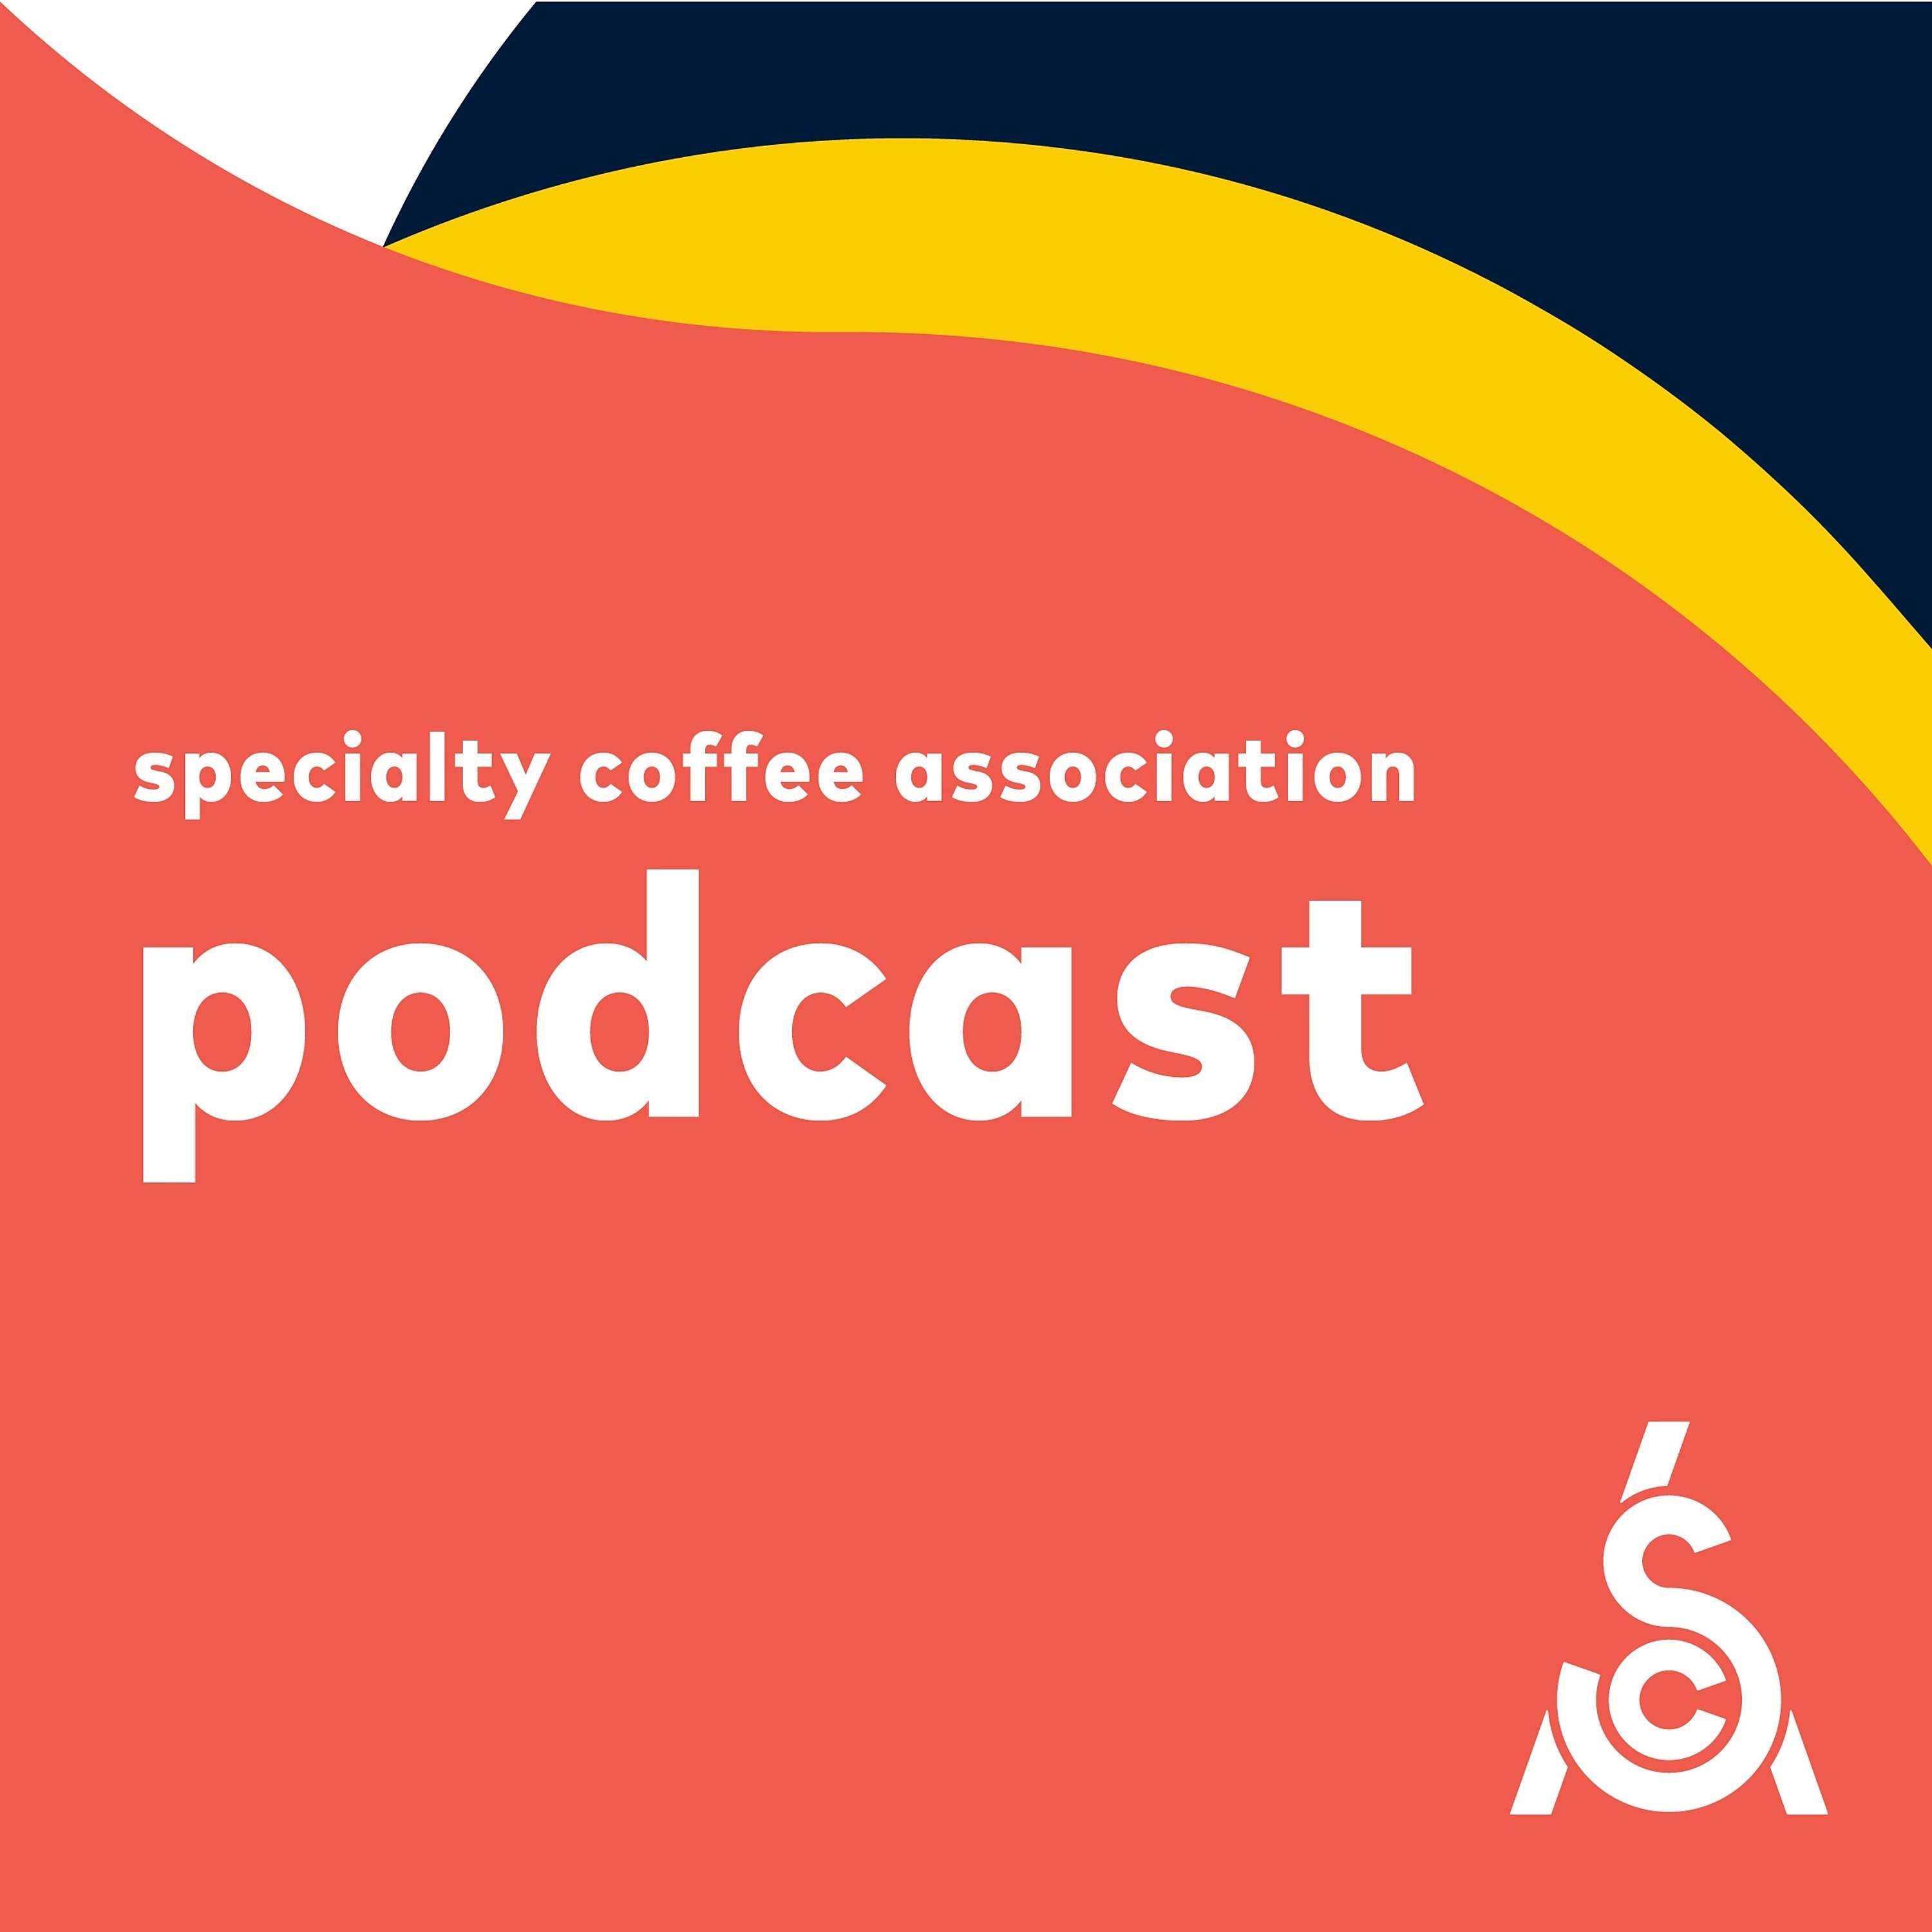 #75 | Consumer Desire Along Roast Degree: What Do Specialty Coffee Drinkers Actually Want From Us? | Erika Vonie, Expo Lectures 2019